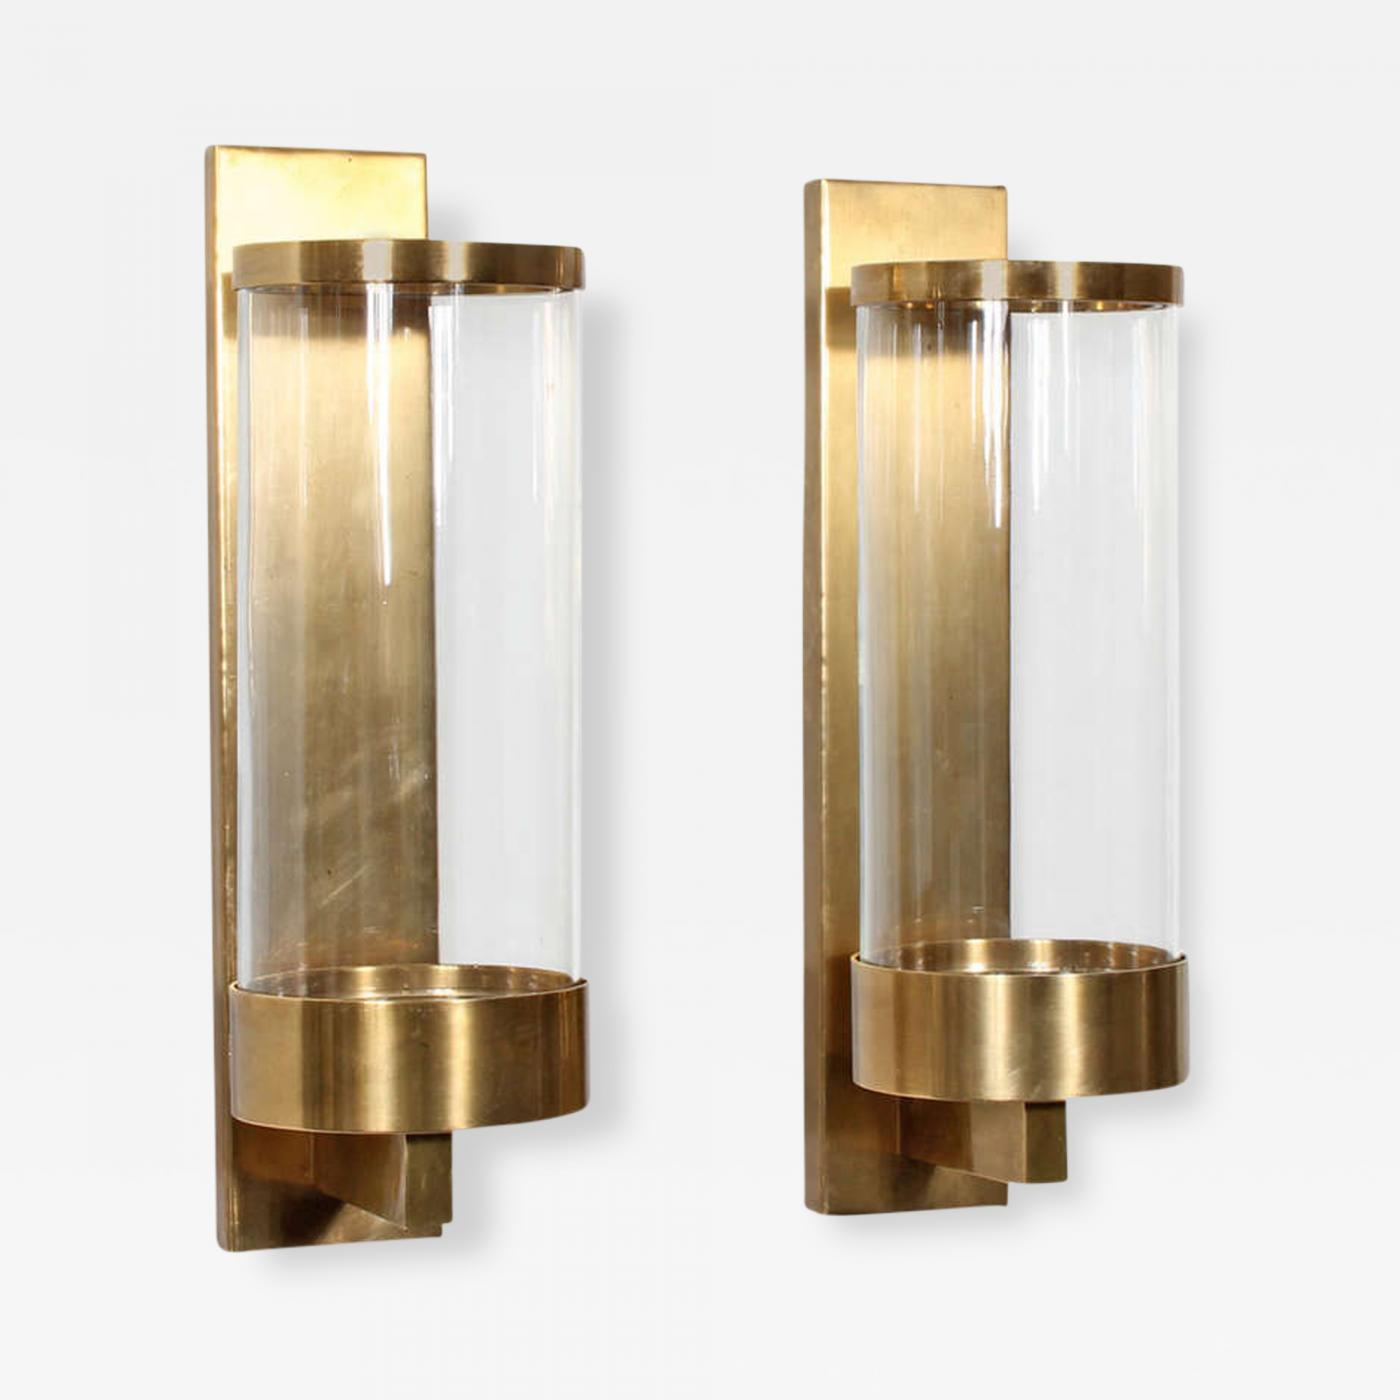 Chapman Manufacturing Company - Pair of Modern Cylinder Glass & Brass Wall Sconces